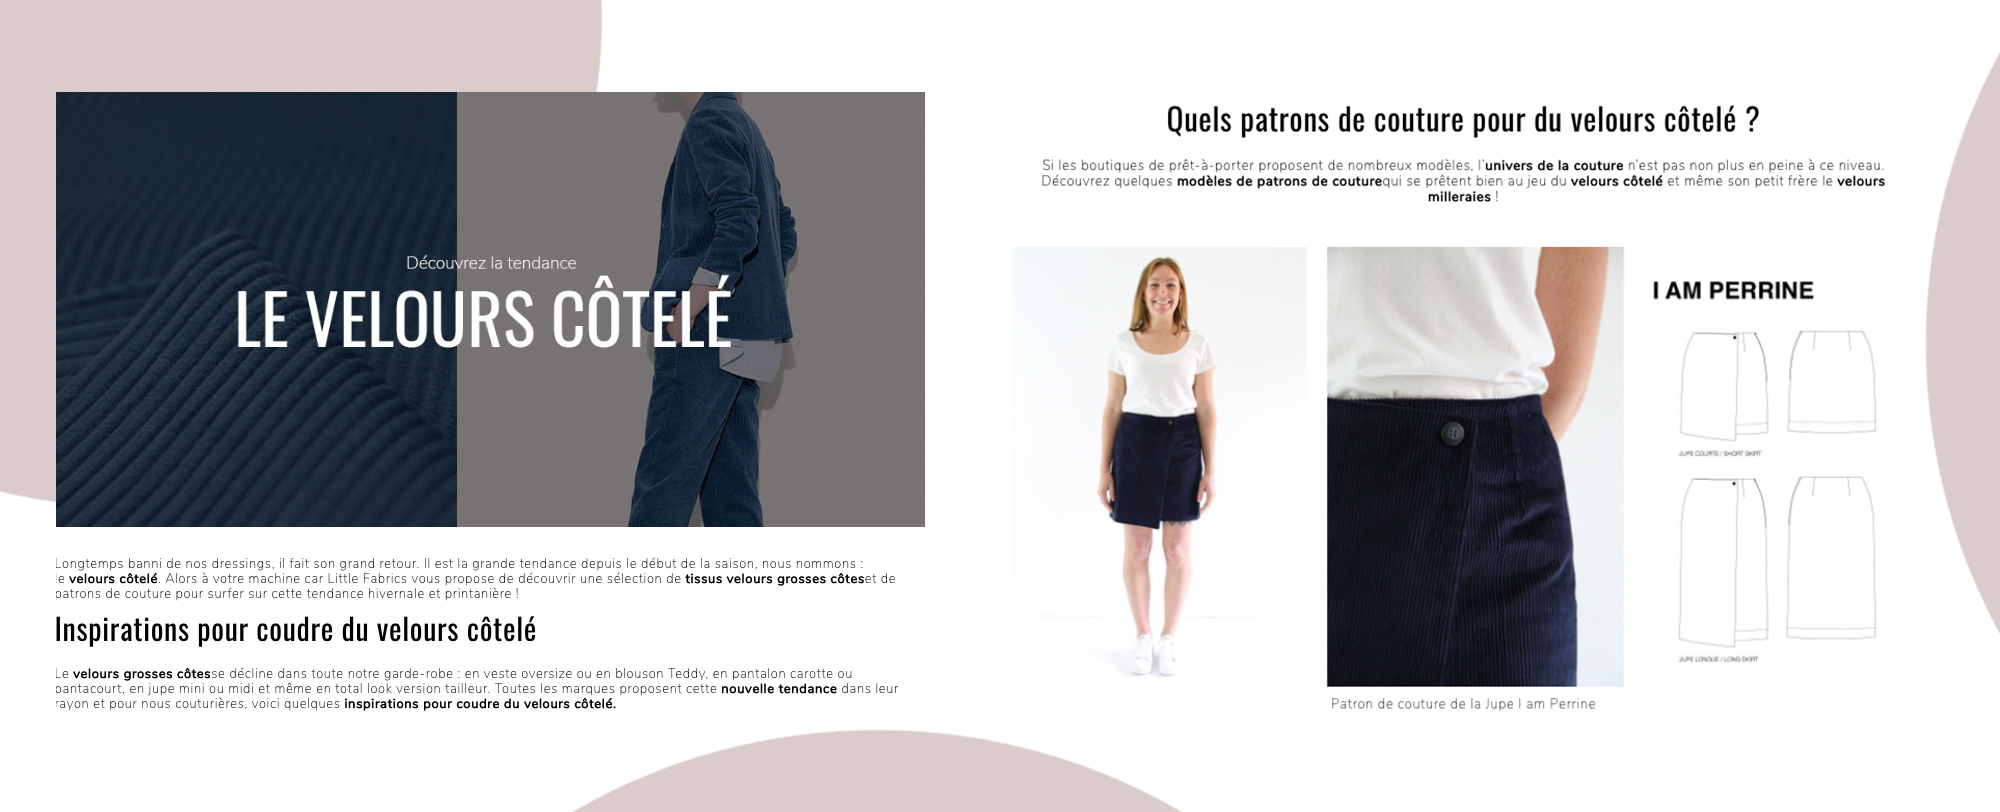 redaction-article-couture